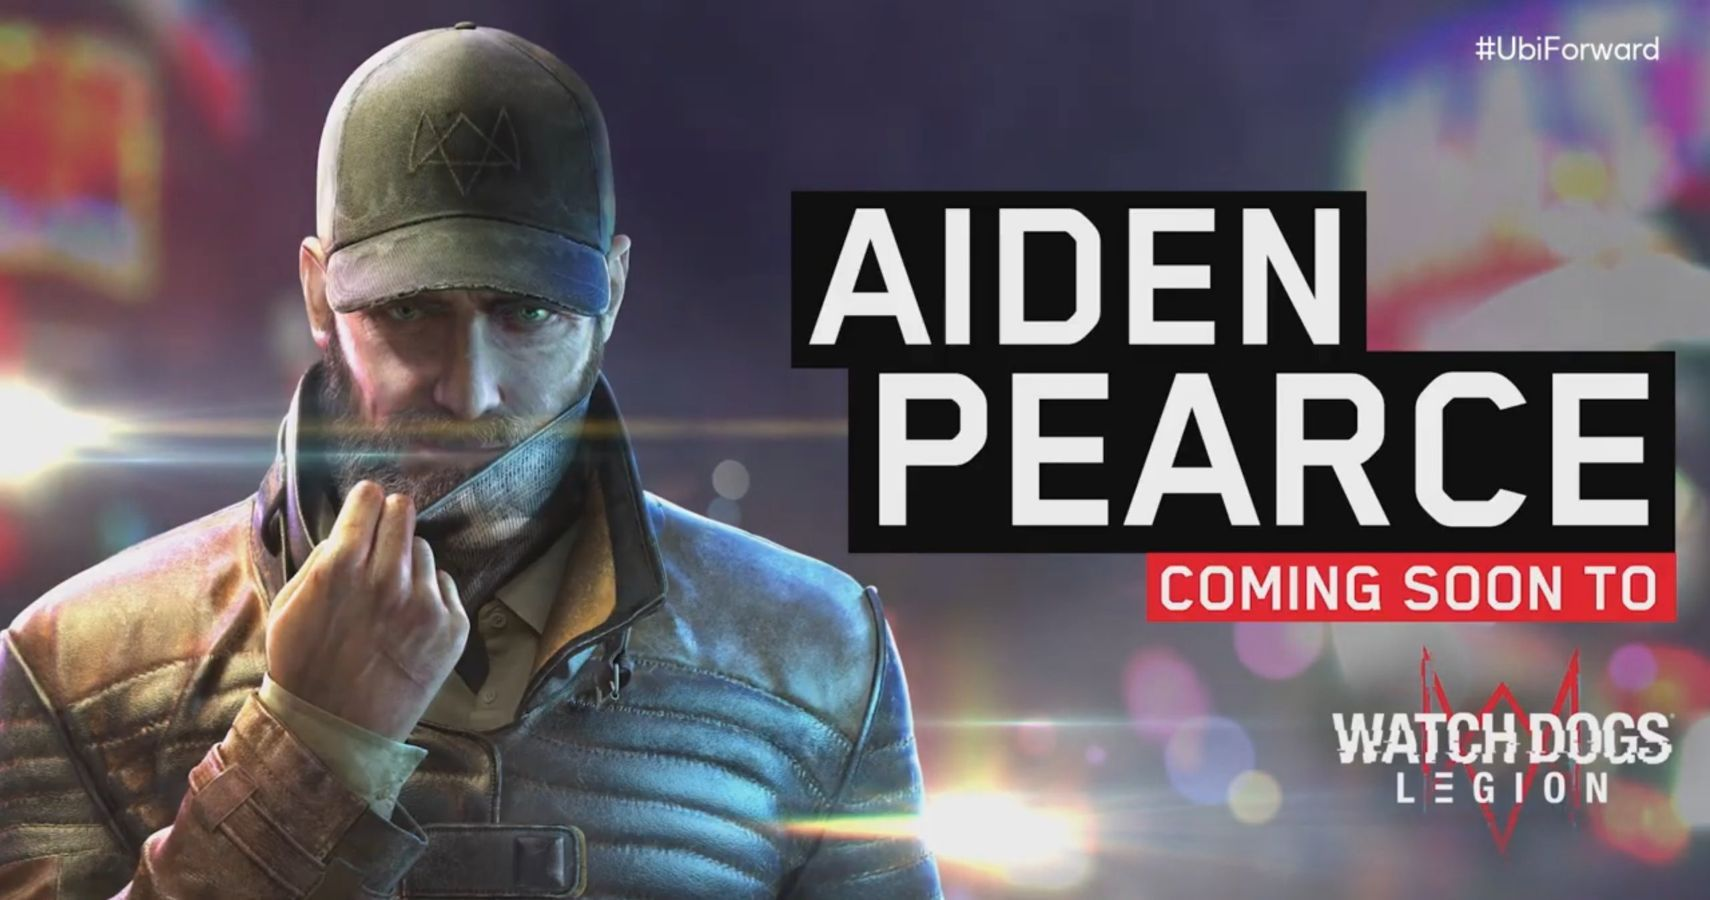 Watch Dogs Legion To Bring Back Aiden Pearce With DLC